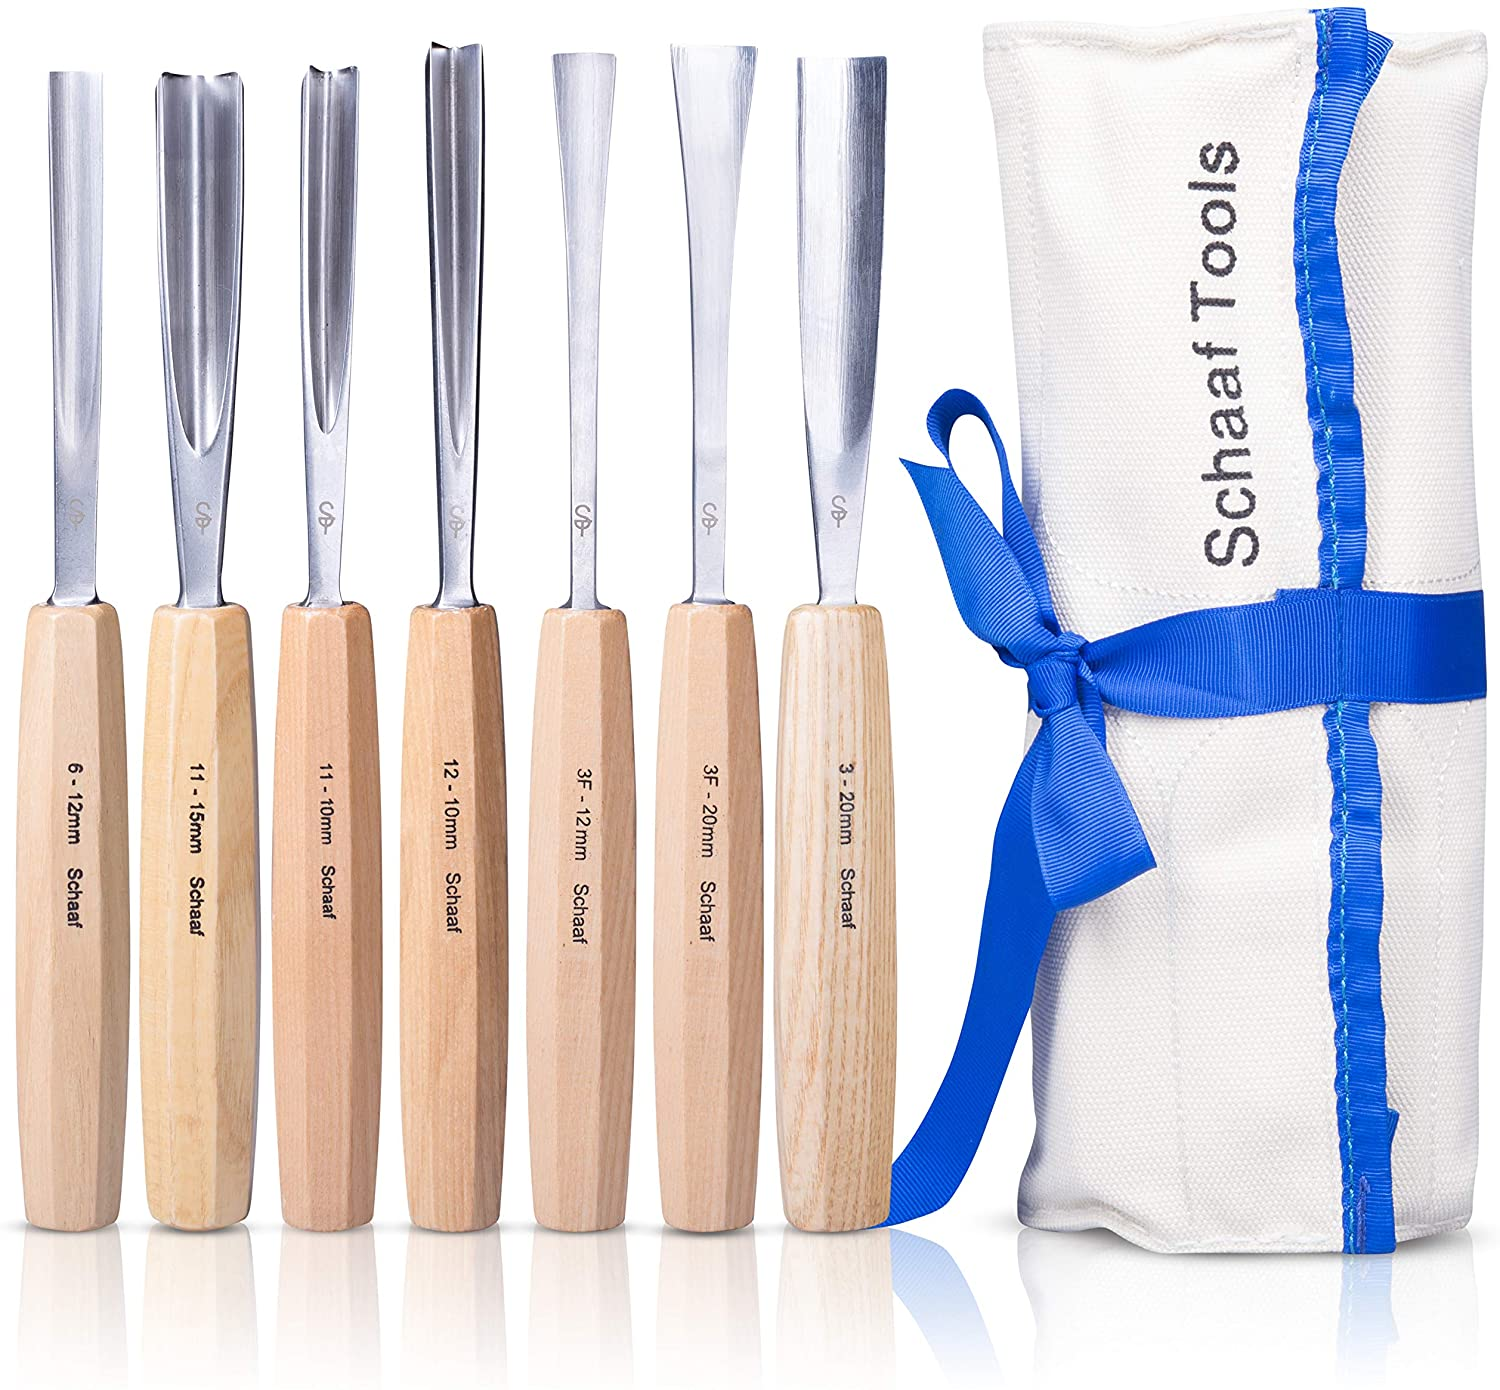 SCHAAF Wood Carving and Chisel Set